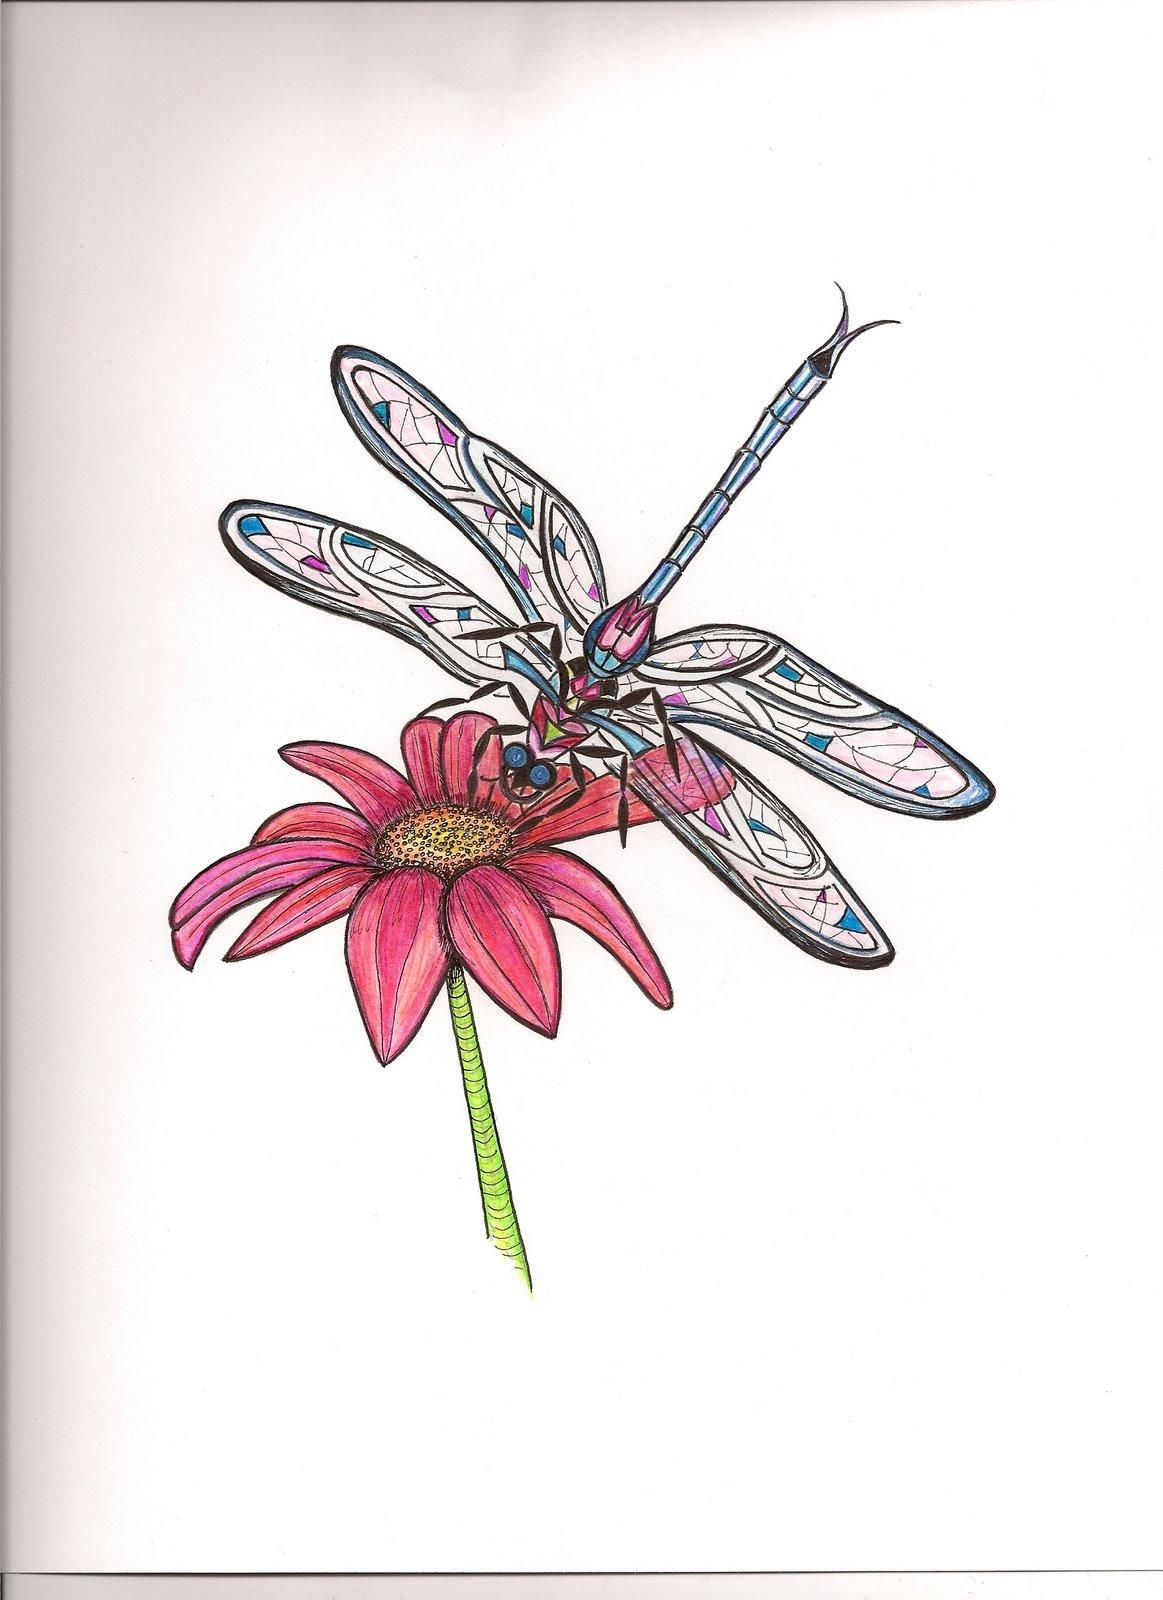 Dragonfly with flower tattoo art blossom lily lotus rose daisy dragonfly with flower tattoo art blossom lily lotus rose daisy tropical sunflower tattoo designs izmirmasajfo Image collections